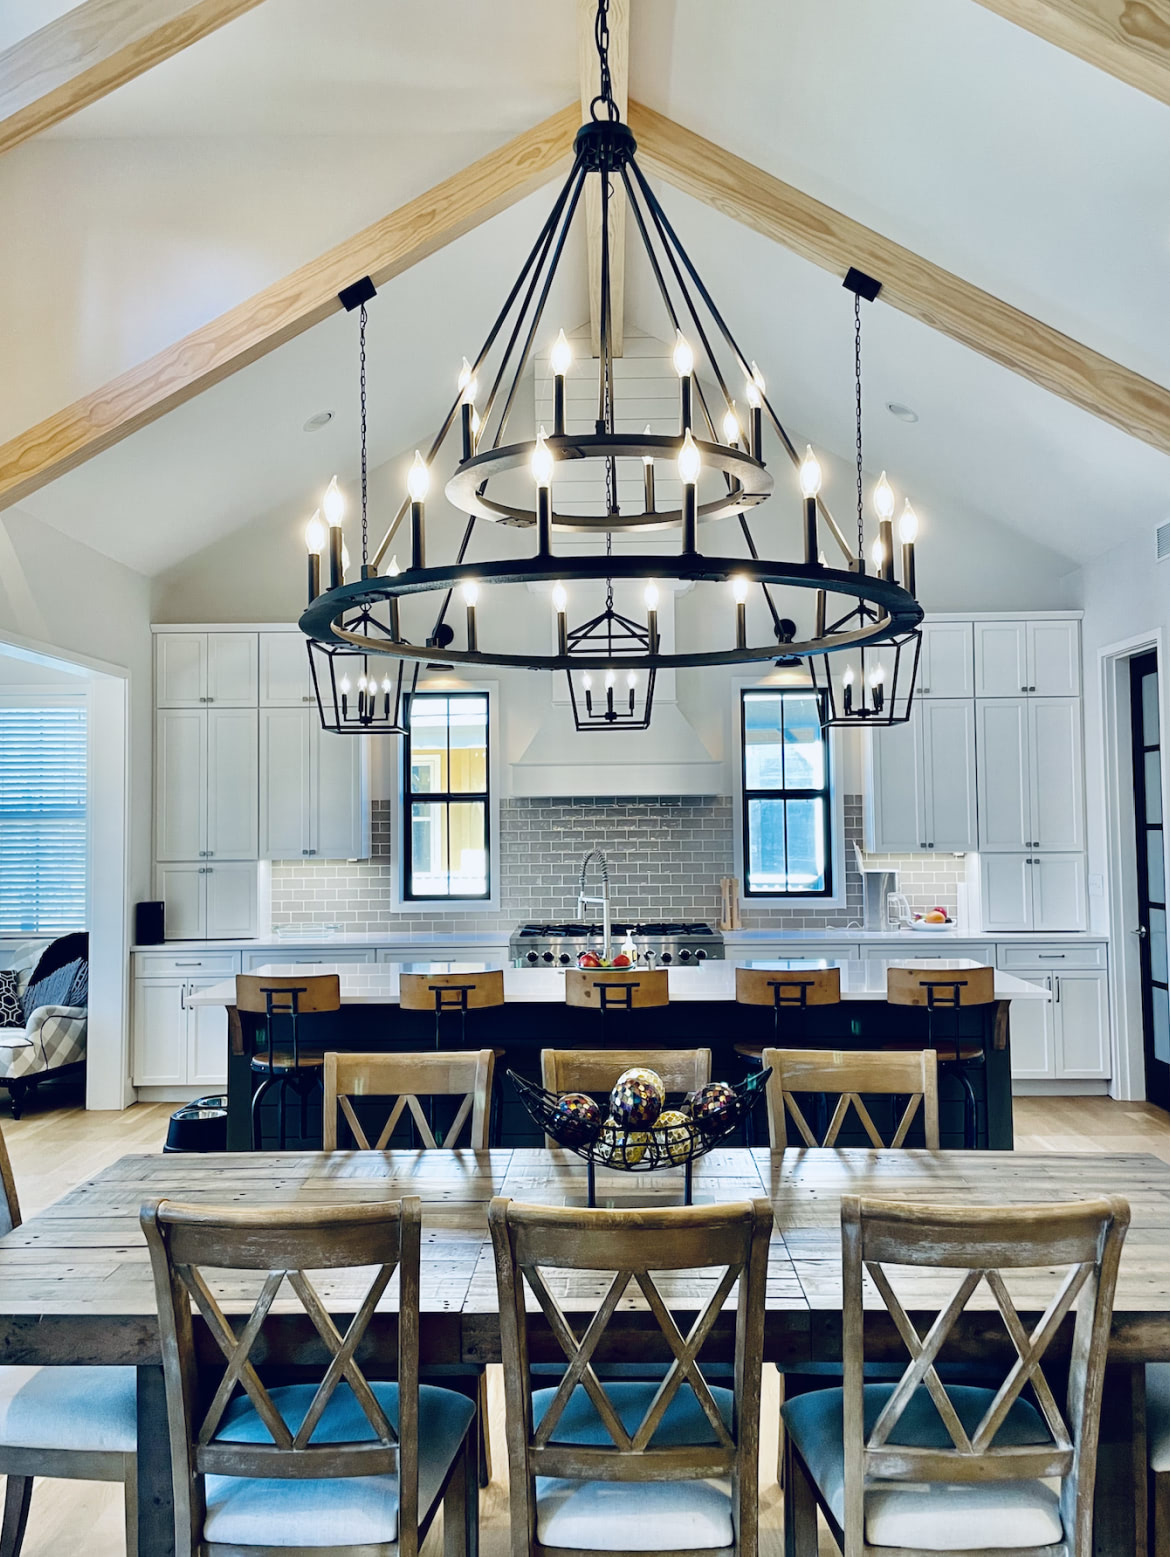 Lake Cove dining area with chandelier